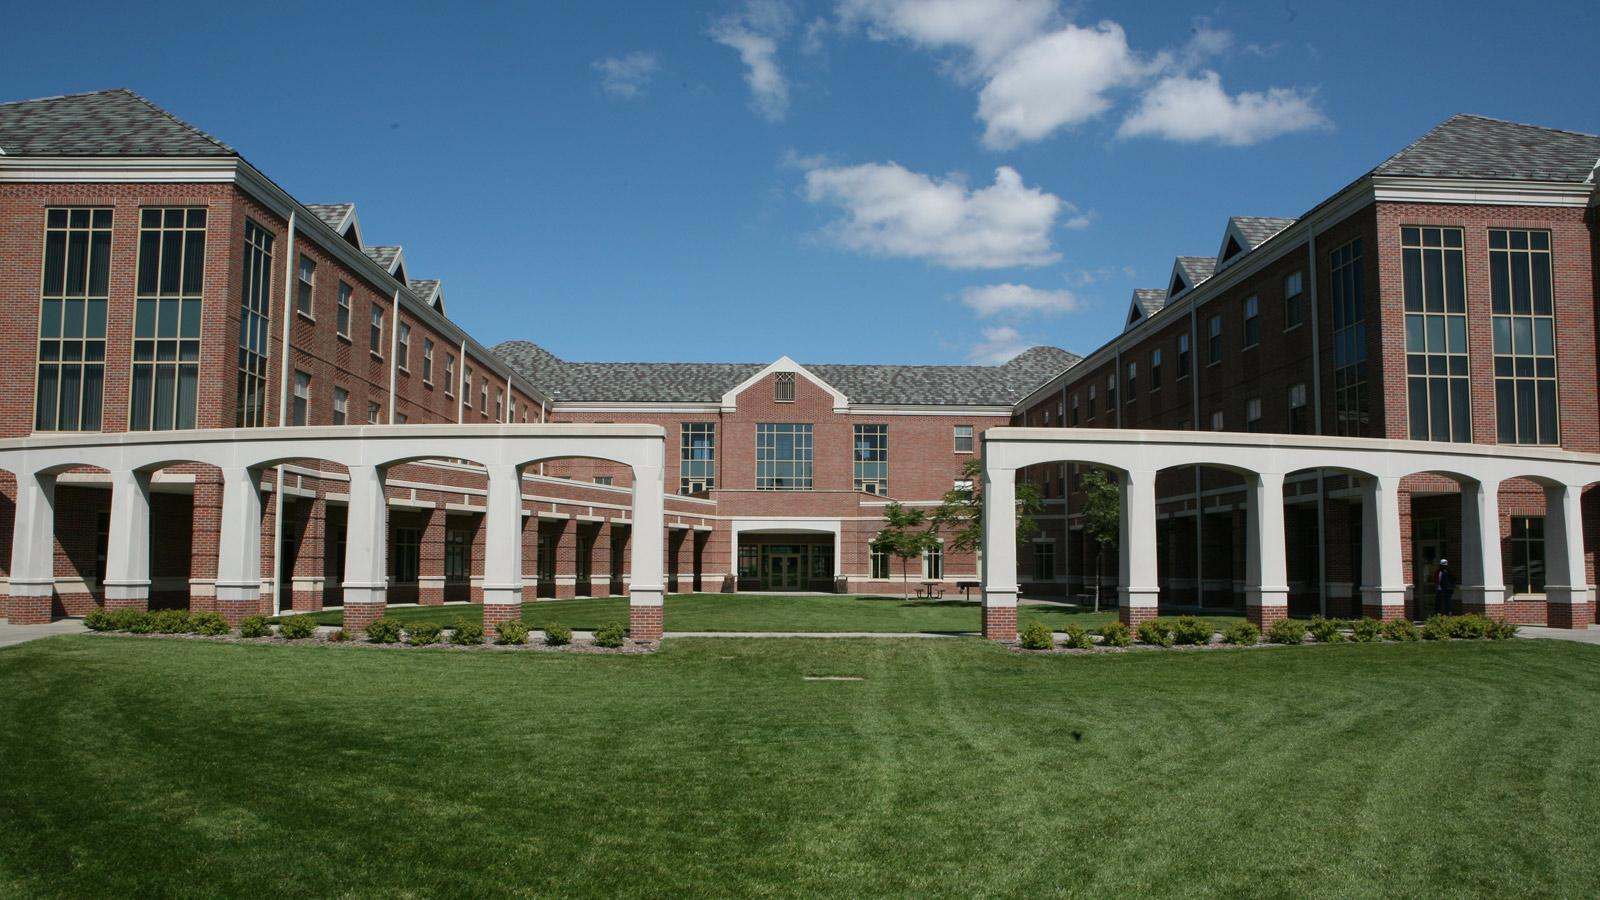 The Kauffman Academic Residential Center